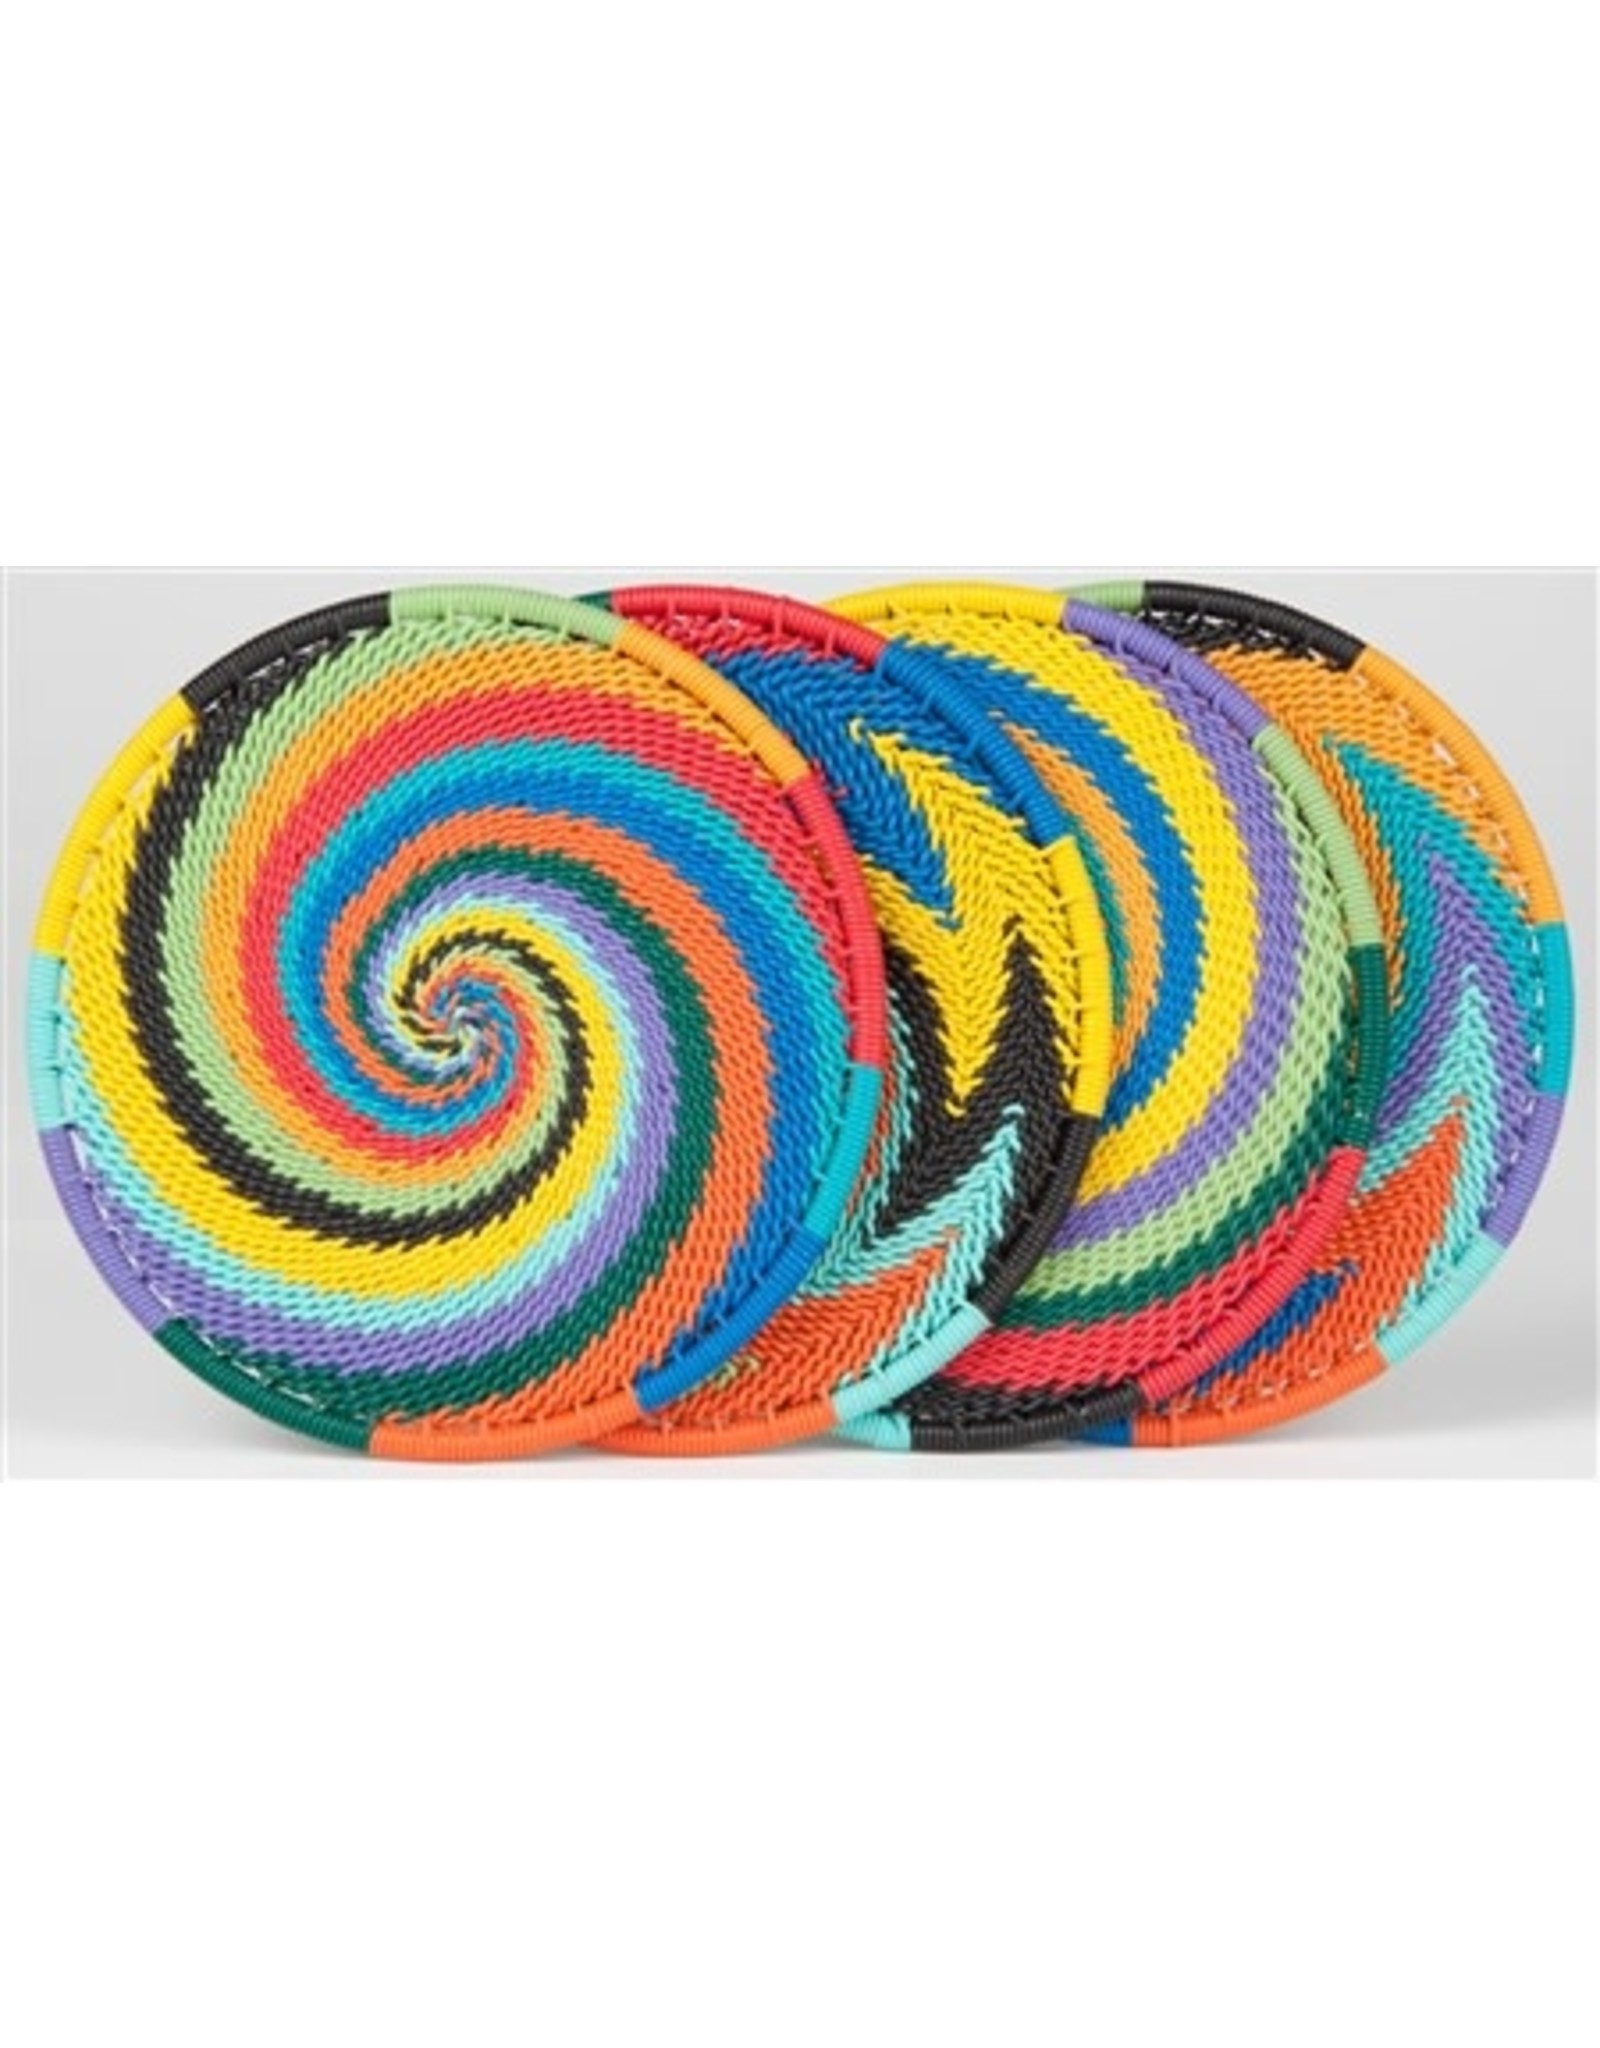 Telephone Wire Coasters  African Spirit